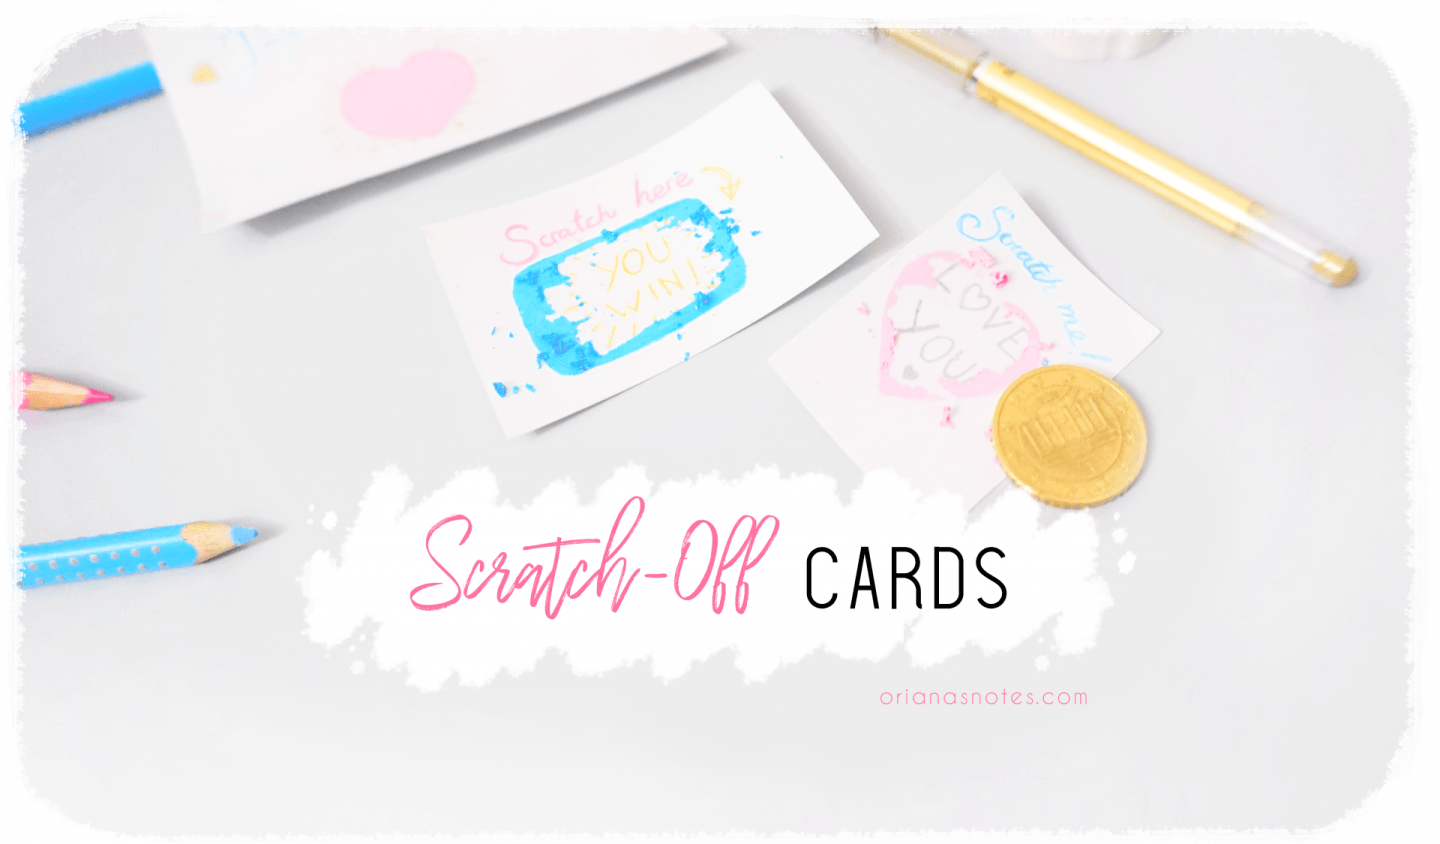 DIY – Cute Scratch-Off Cards